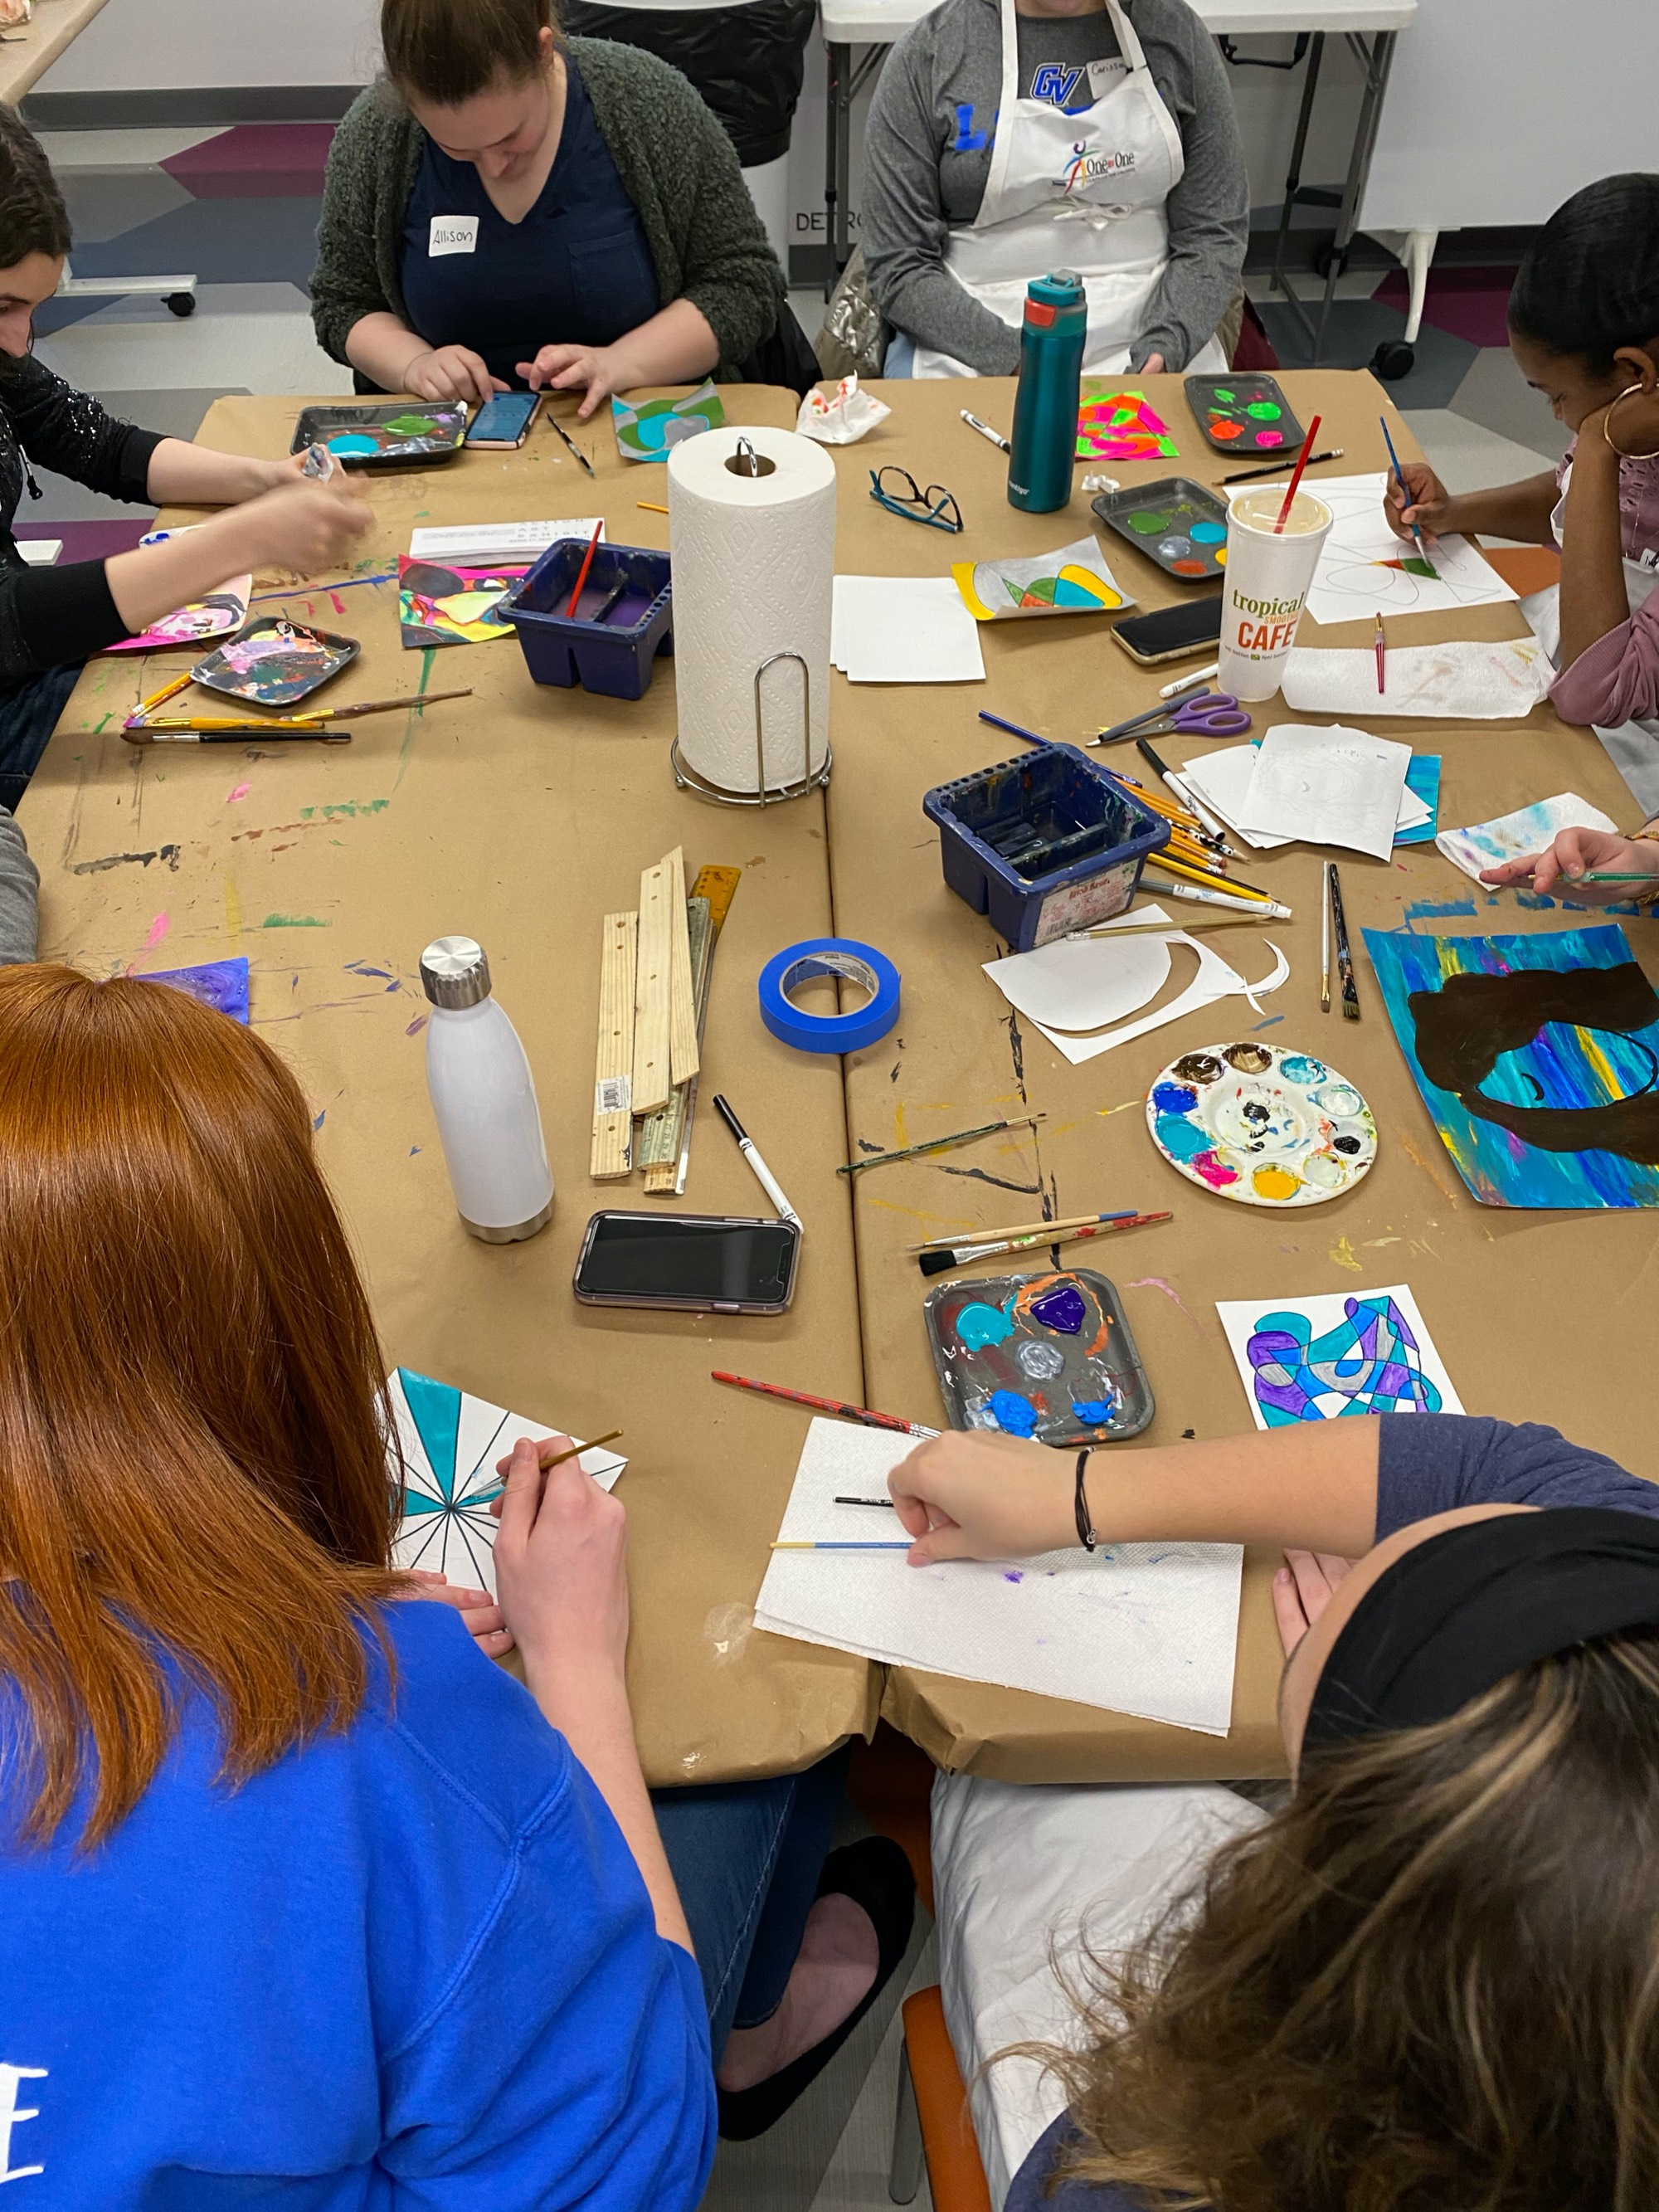 Campus Links with Artists Creating Together